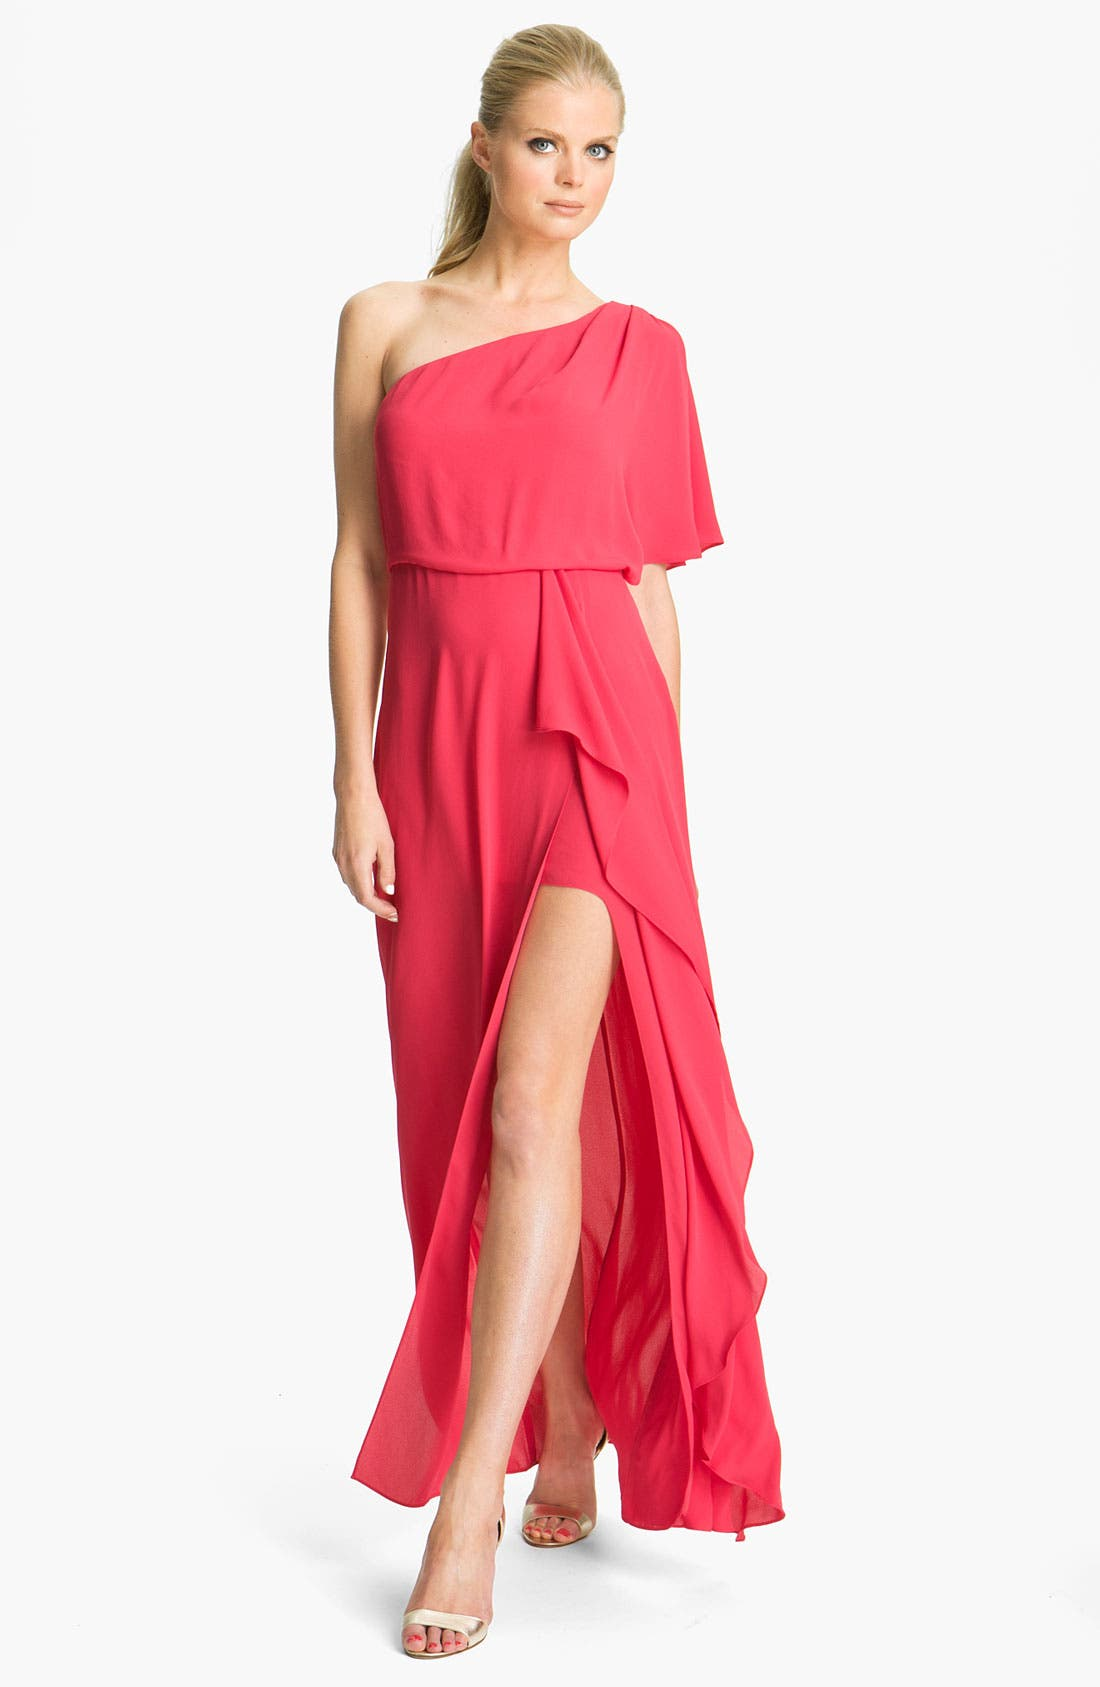 Main Image - BCBGMAXAZRIA 'Kendal' One Shoulder Chiffon Gown